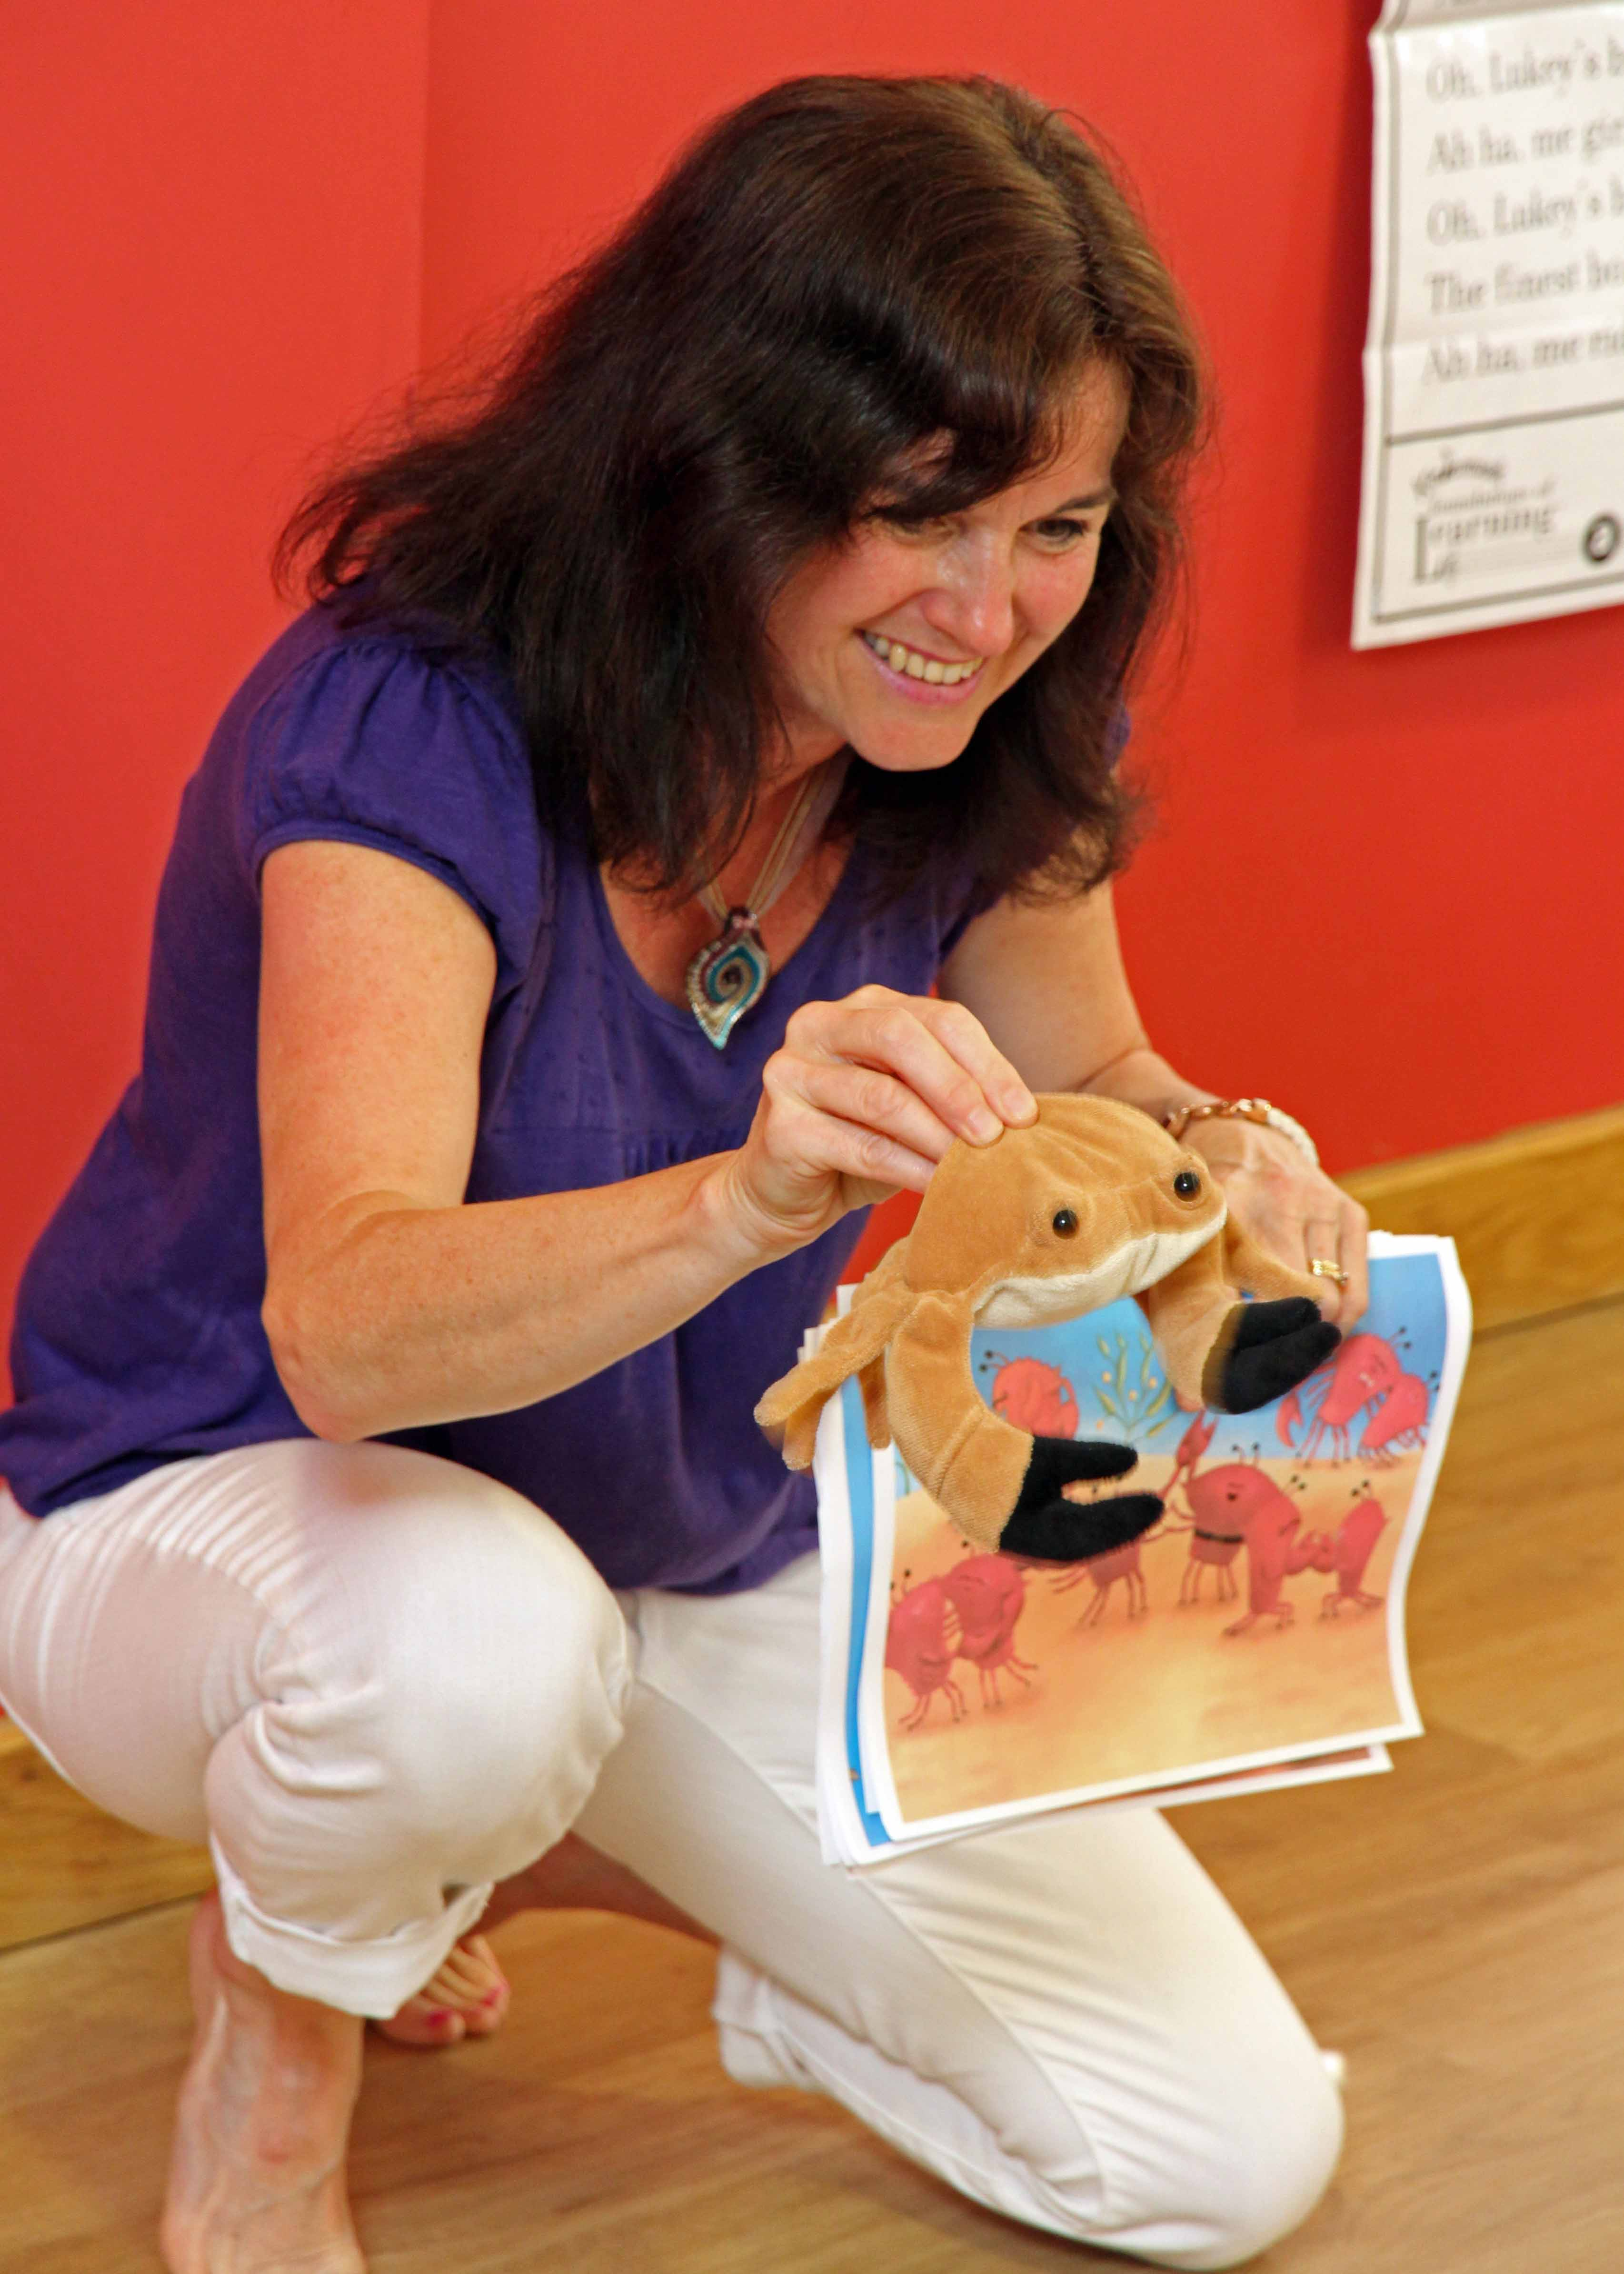 Image of Jan Holt the Kindermusik By Jan teacher smiling and kneeling down showing the children in her class a picture of crabs playing and a soft toy crab too.